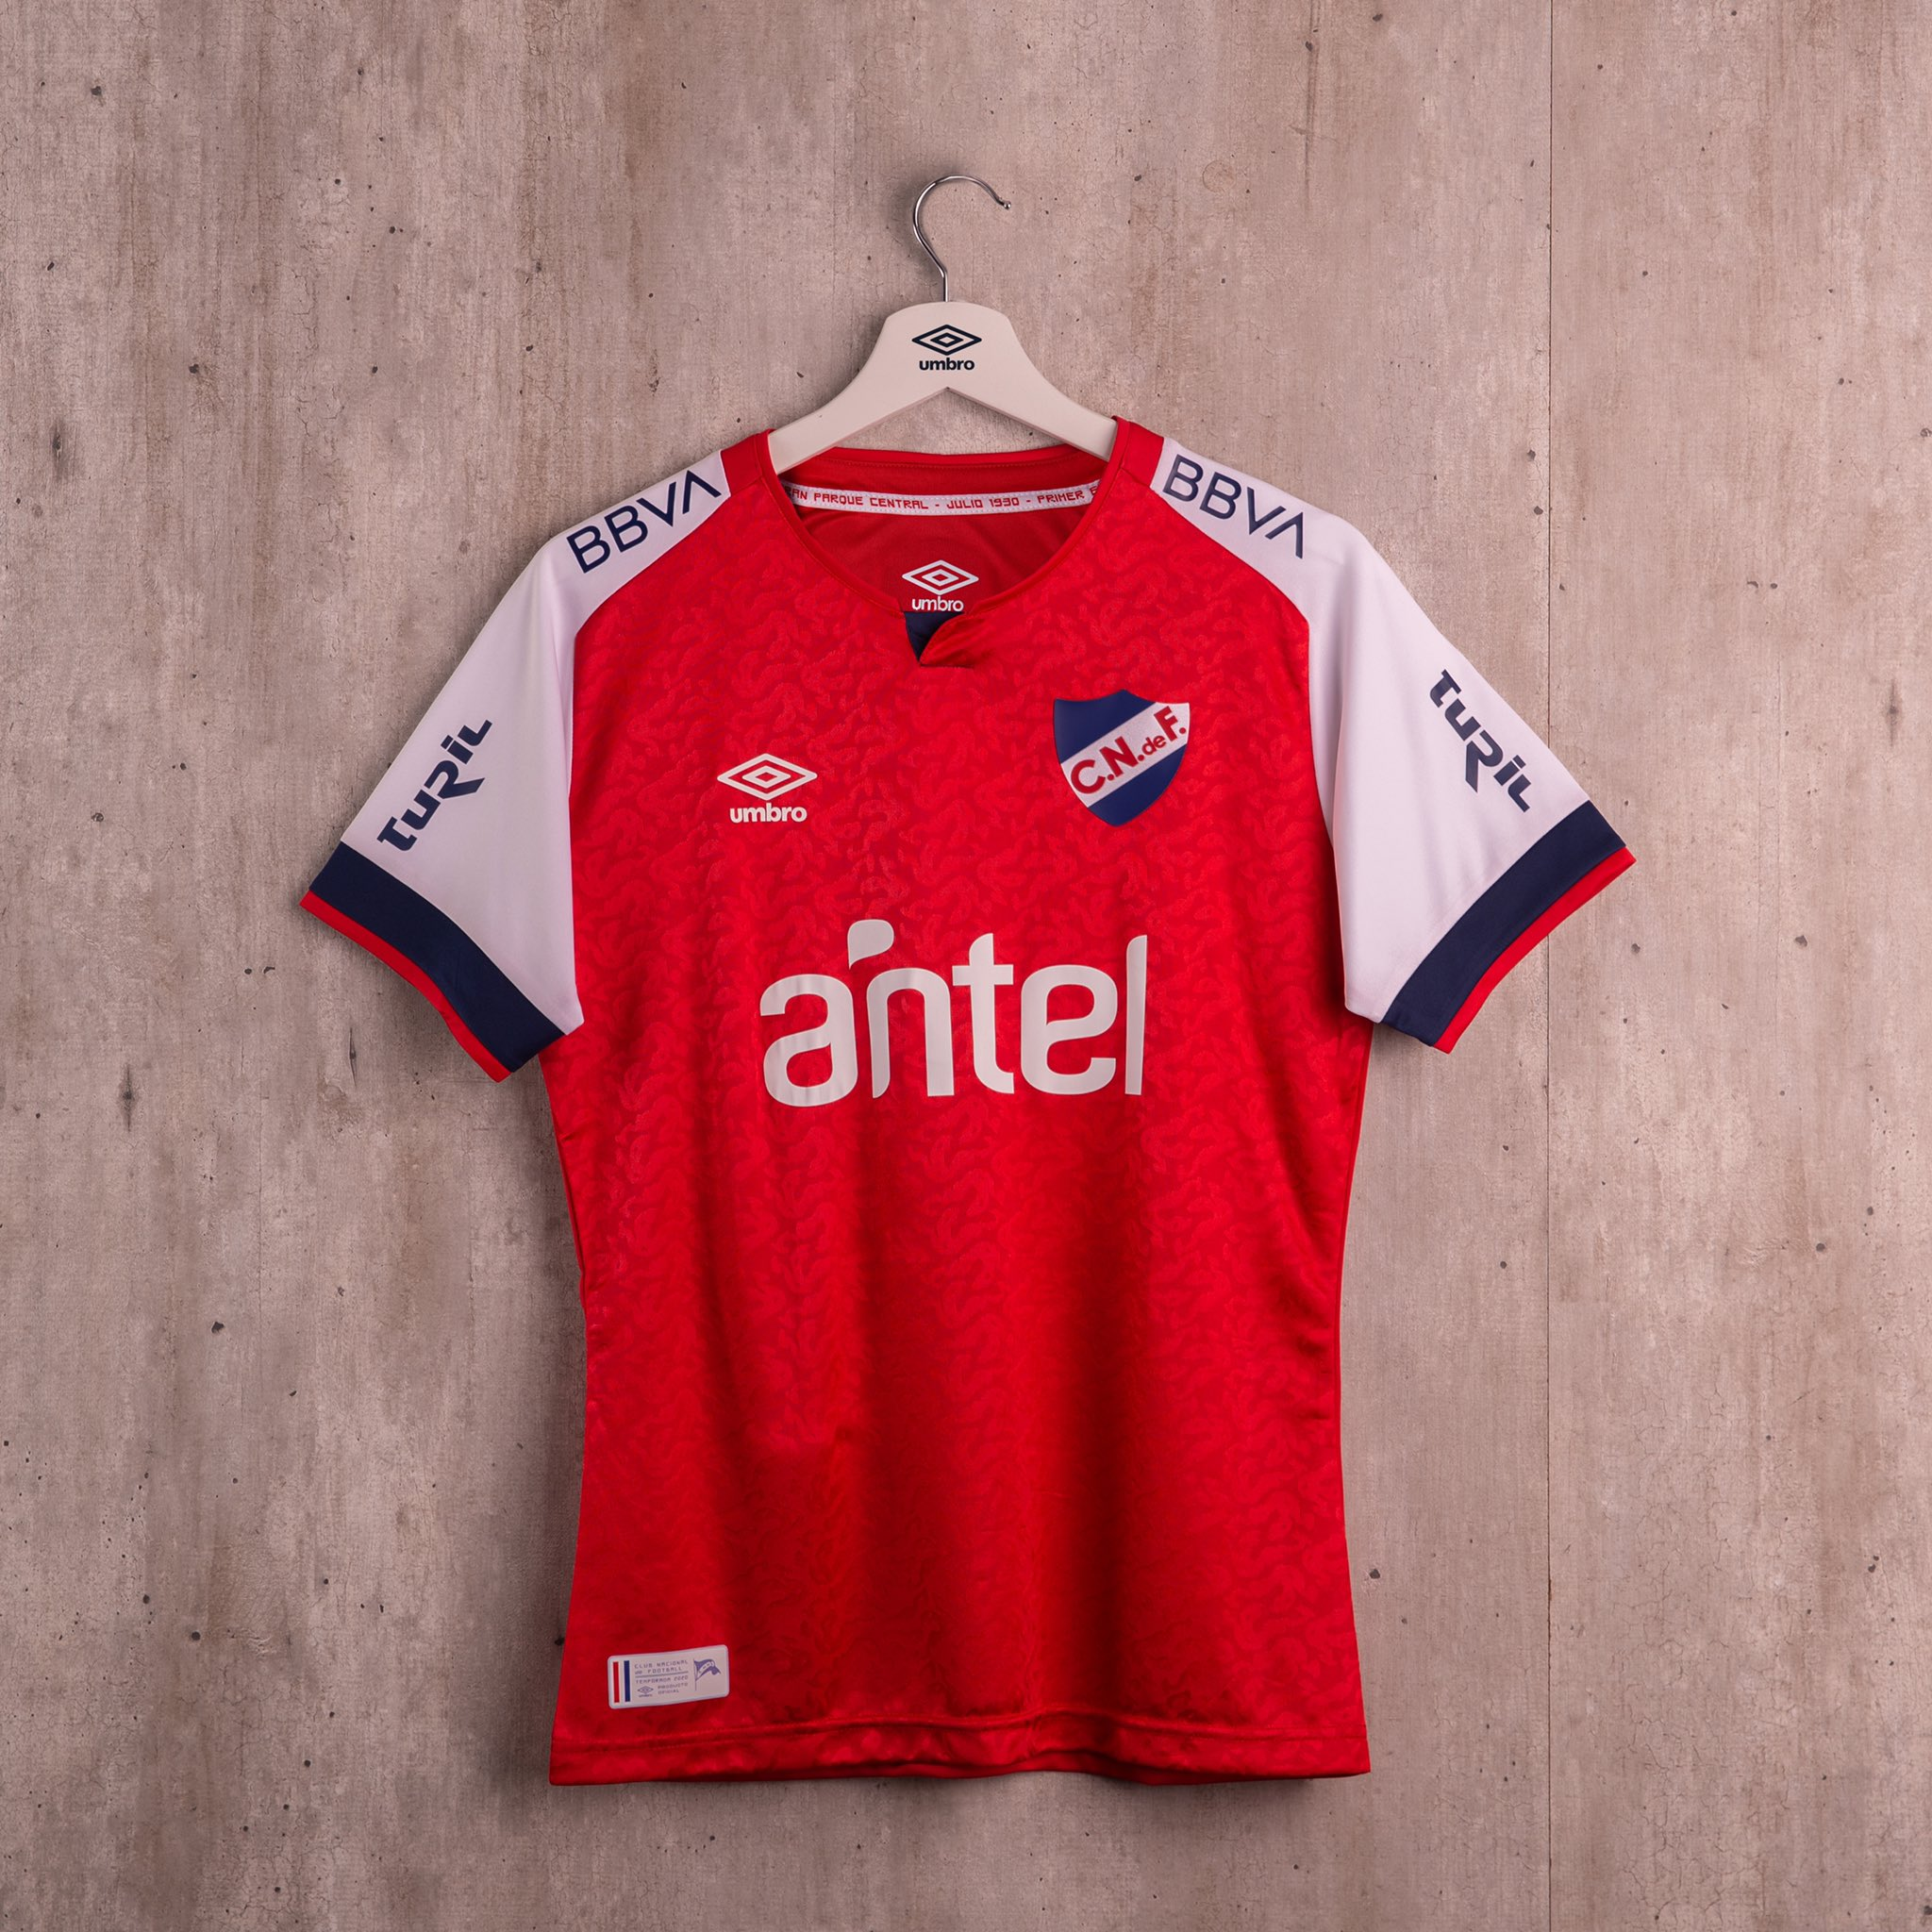 Terceira camisa do Club Nacional 2020-2021 Umbro